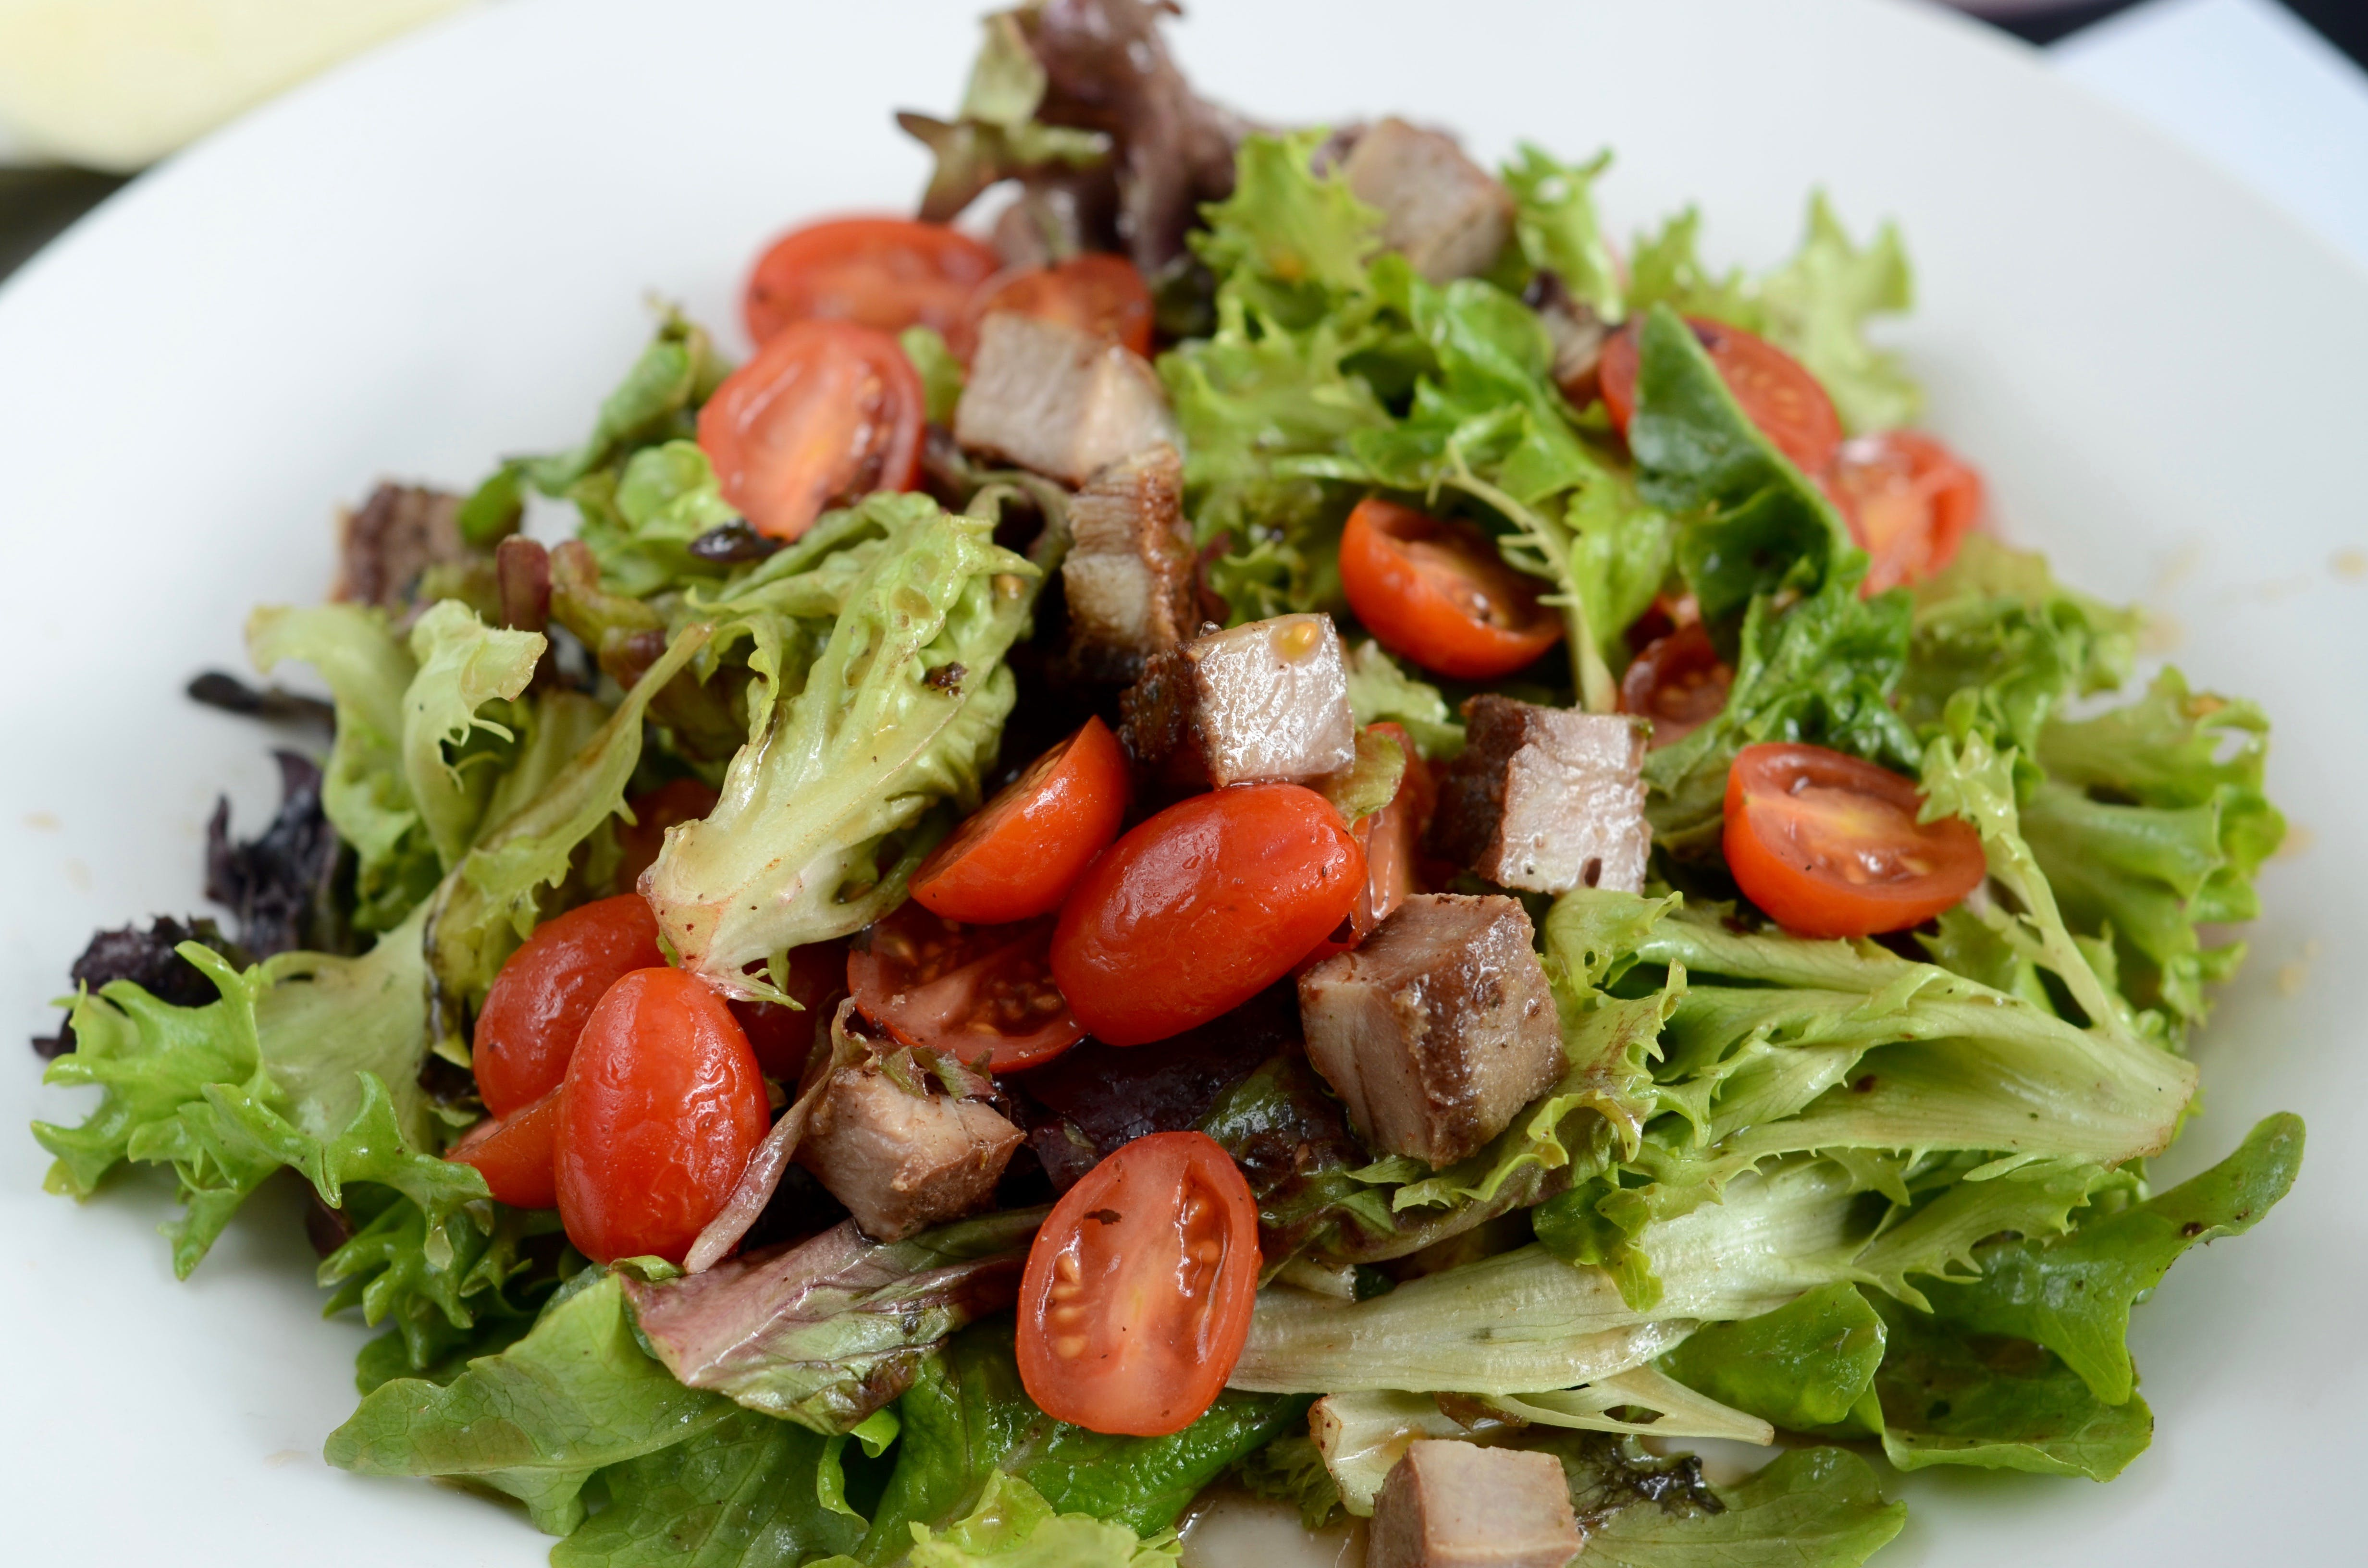 Close-up Photography of Salad